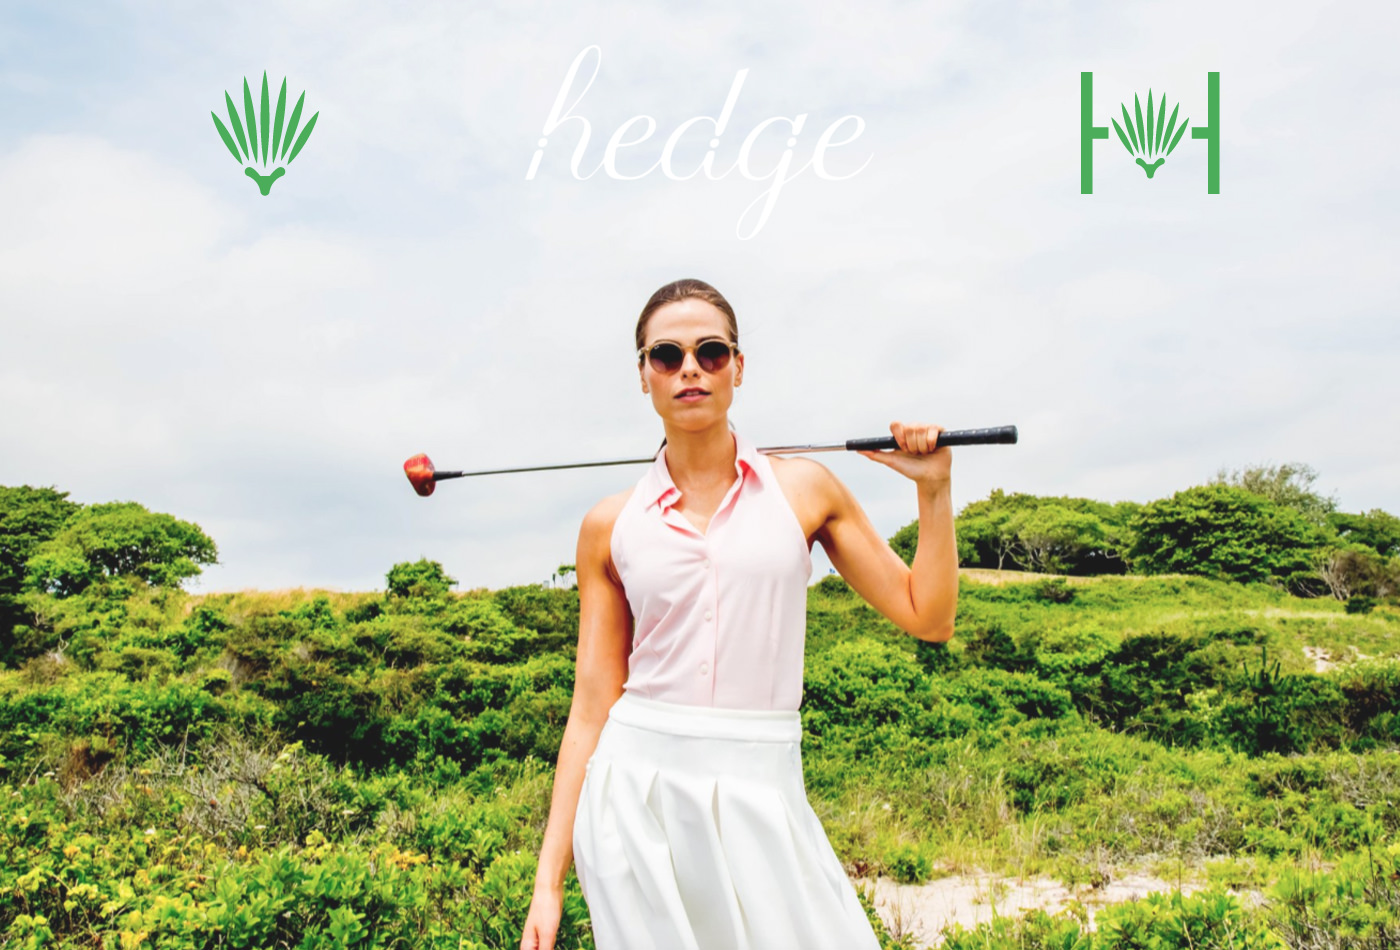 hedge-ny-golf-tennis-branding-hedgehog-icon-vacaliebres-1